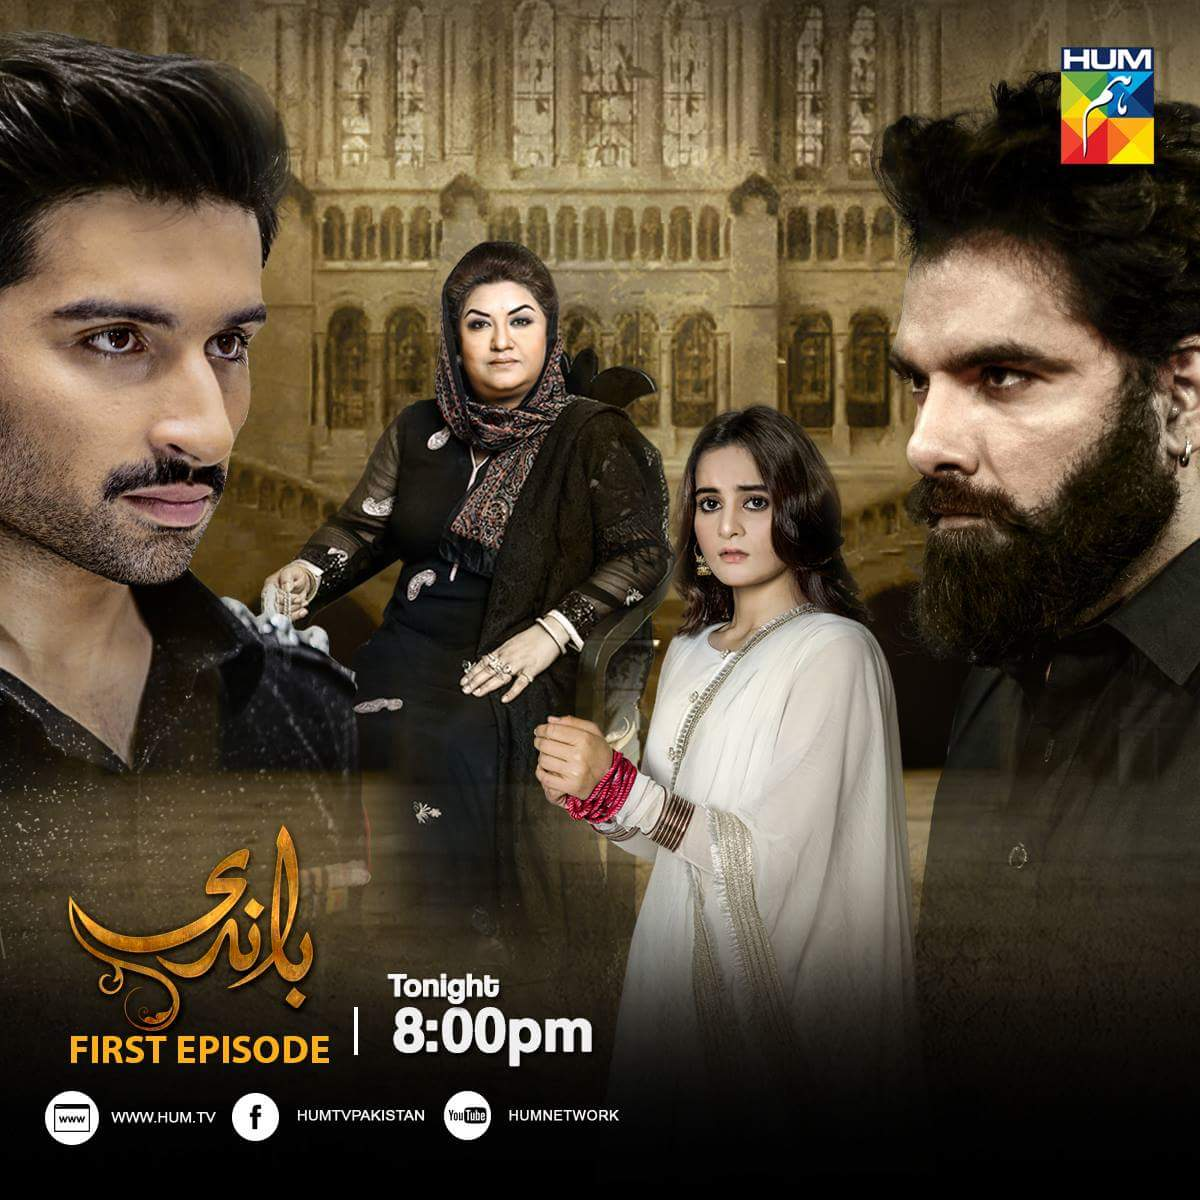 Armoured Vehicles Latin America ⁓ These Hum Tv Live Drama Baandi